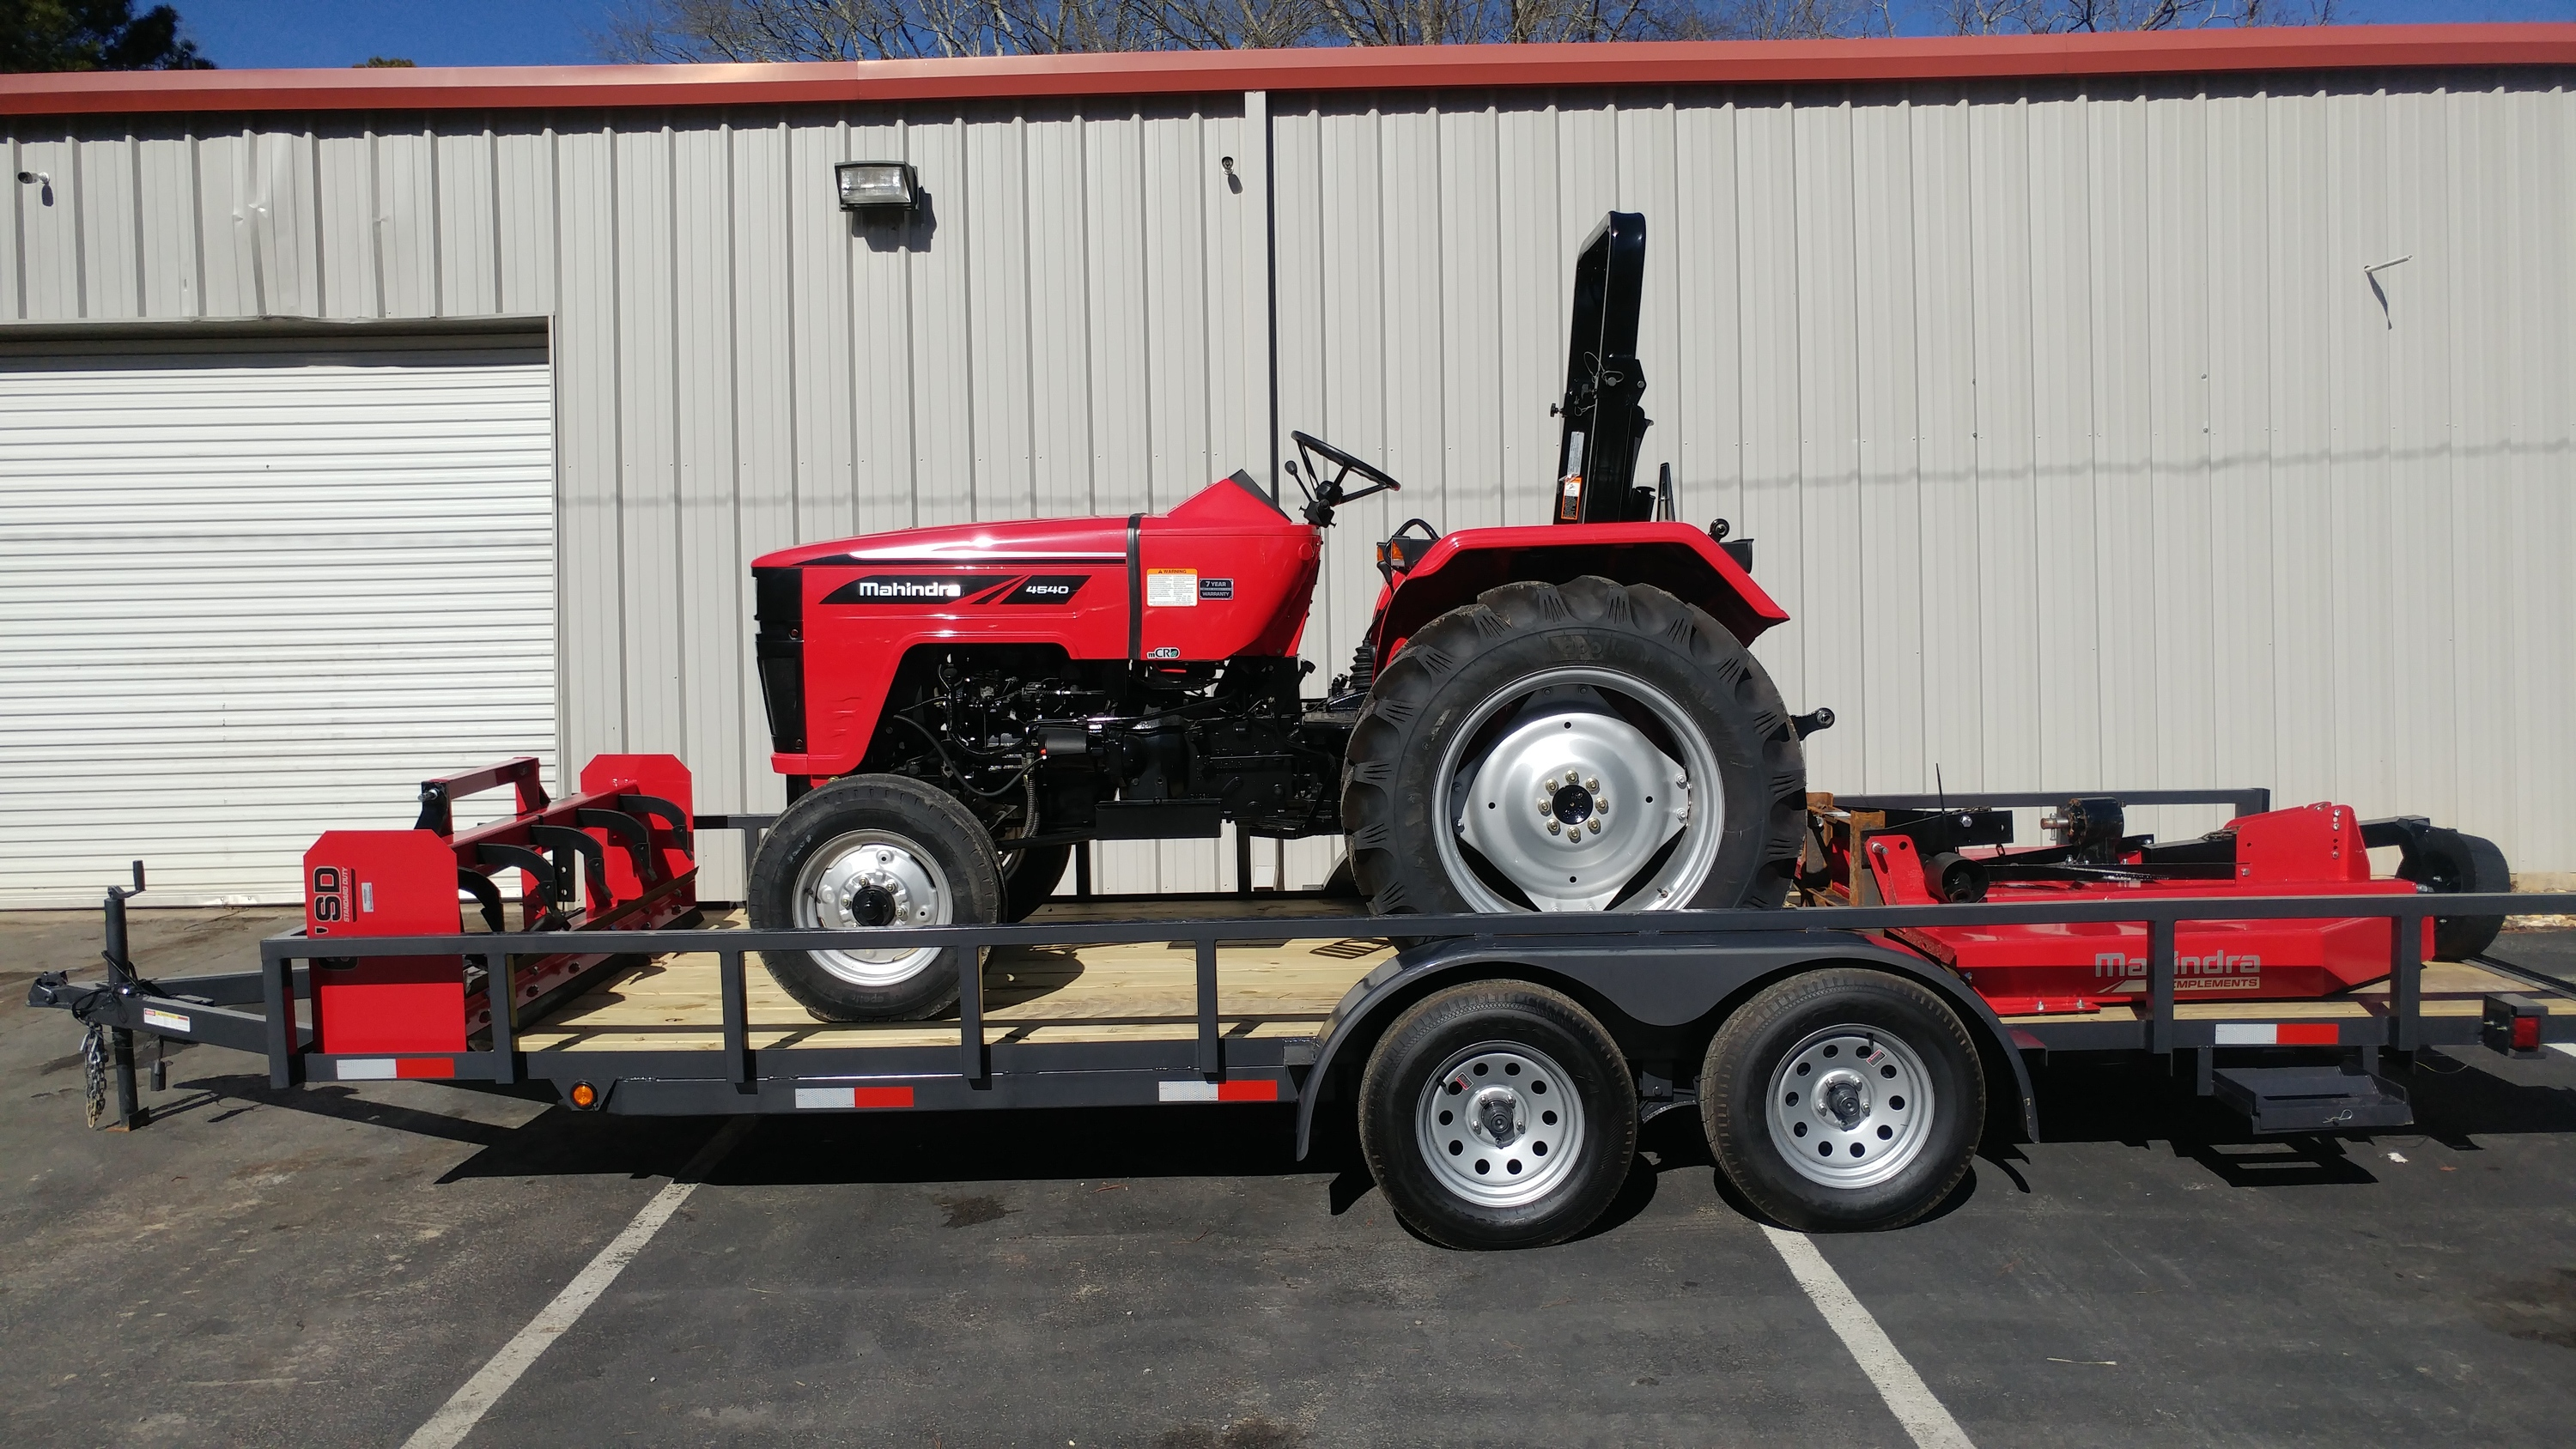 40 Hp 2wd Tractor With 8 X 2 Transmission 6 Mahindra Rotary Mower Box Blade 20 Dual Axle Trailer Brakes And Loading Ramps Package